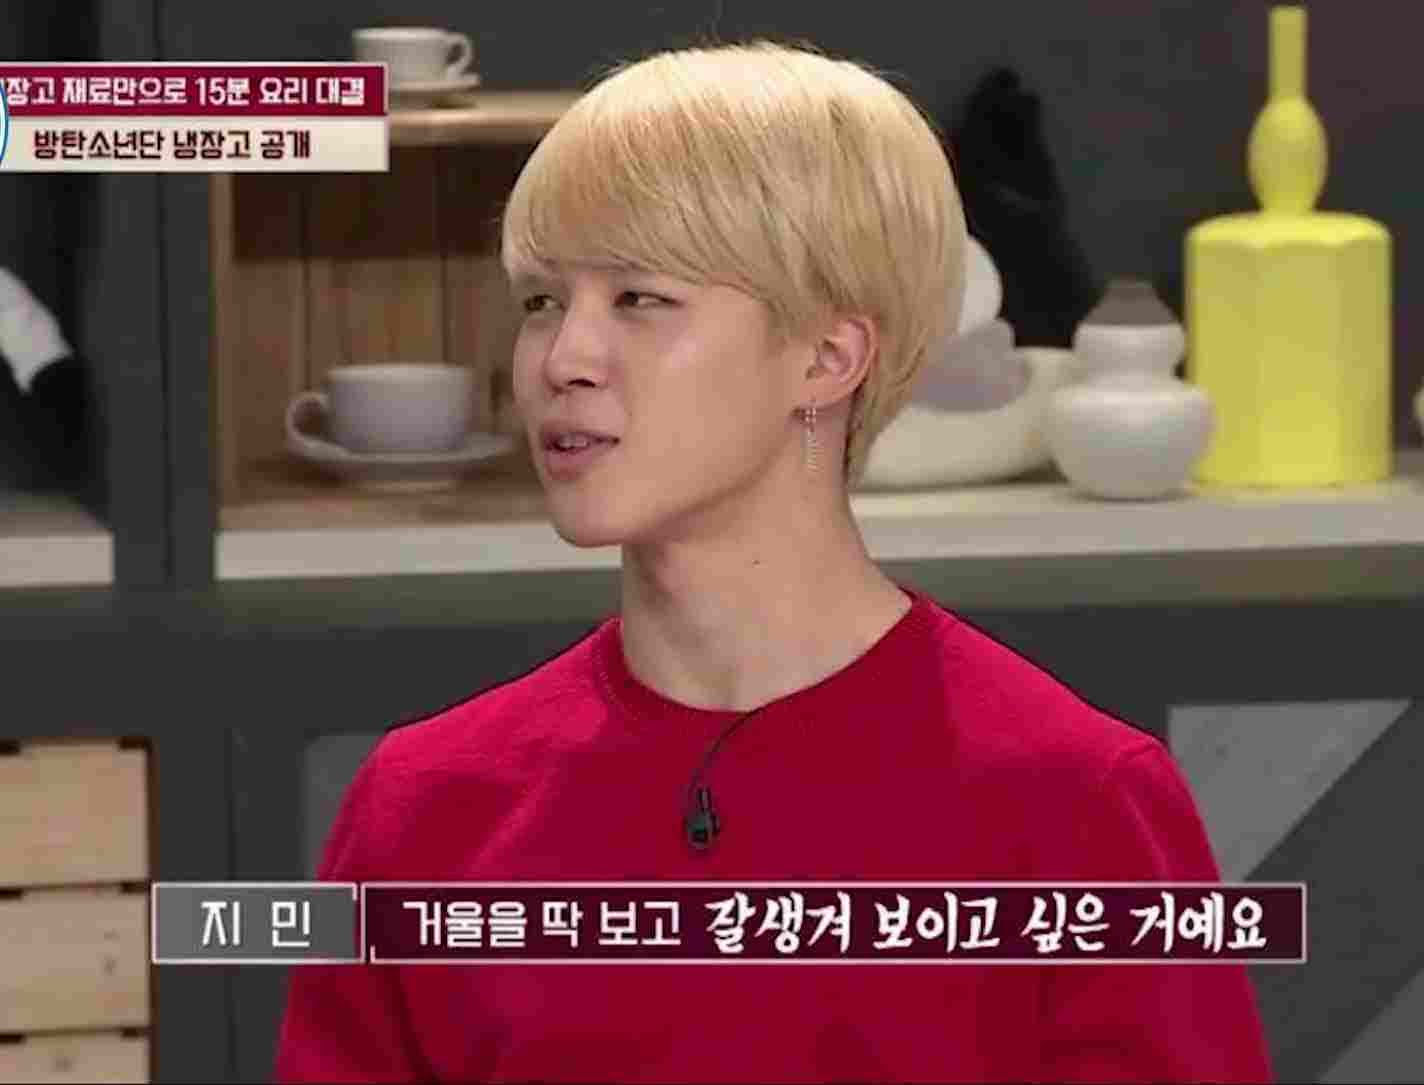 bts jimin on tv show